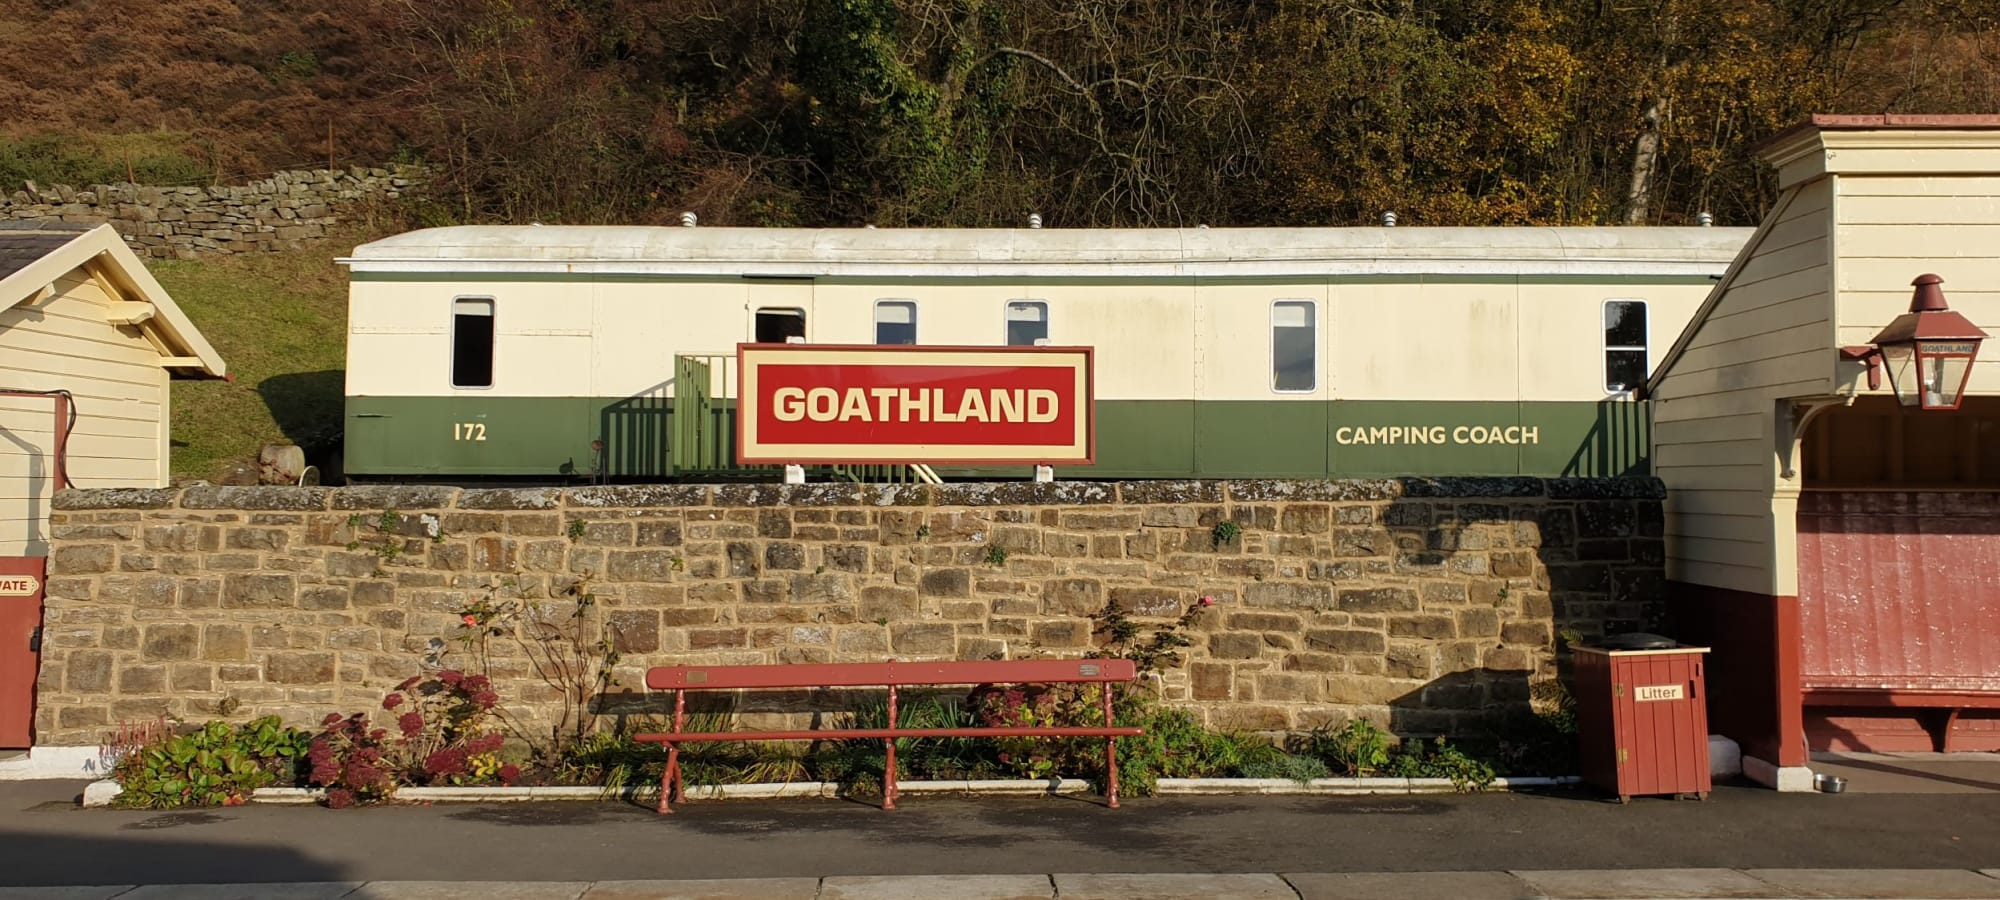 Goathland Camping Coach